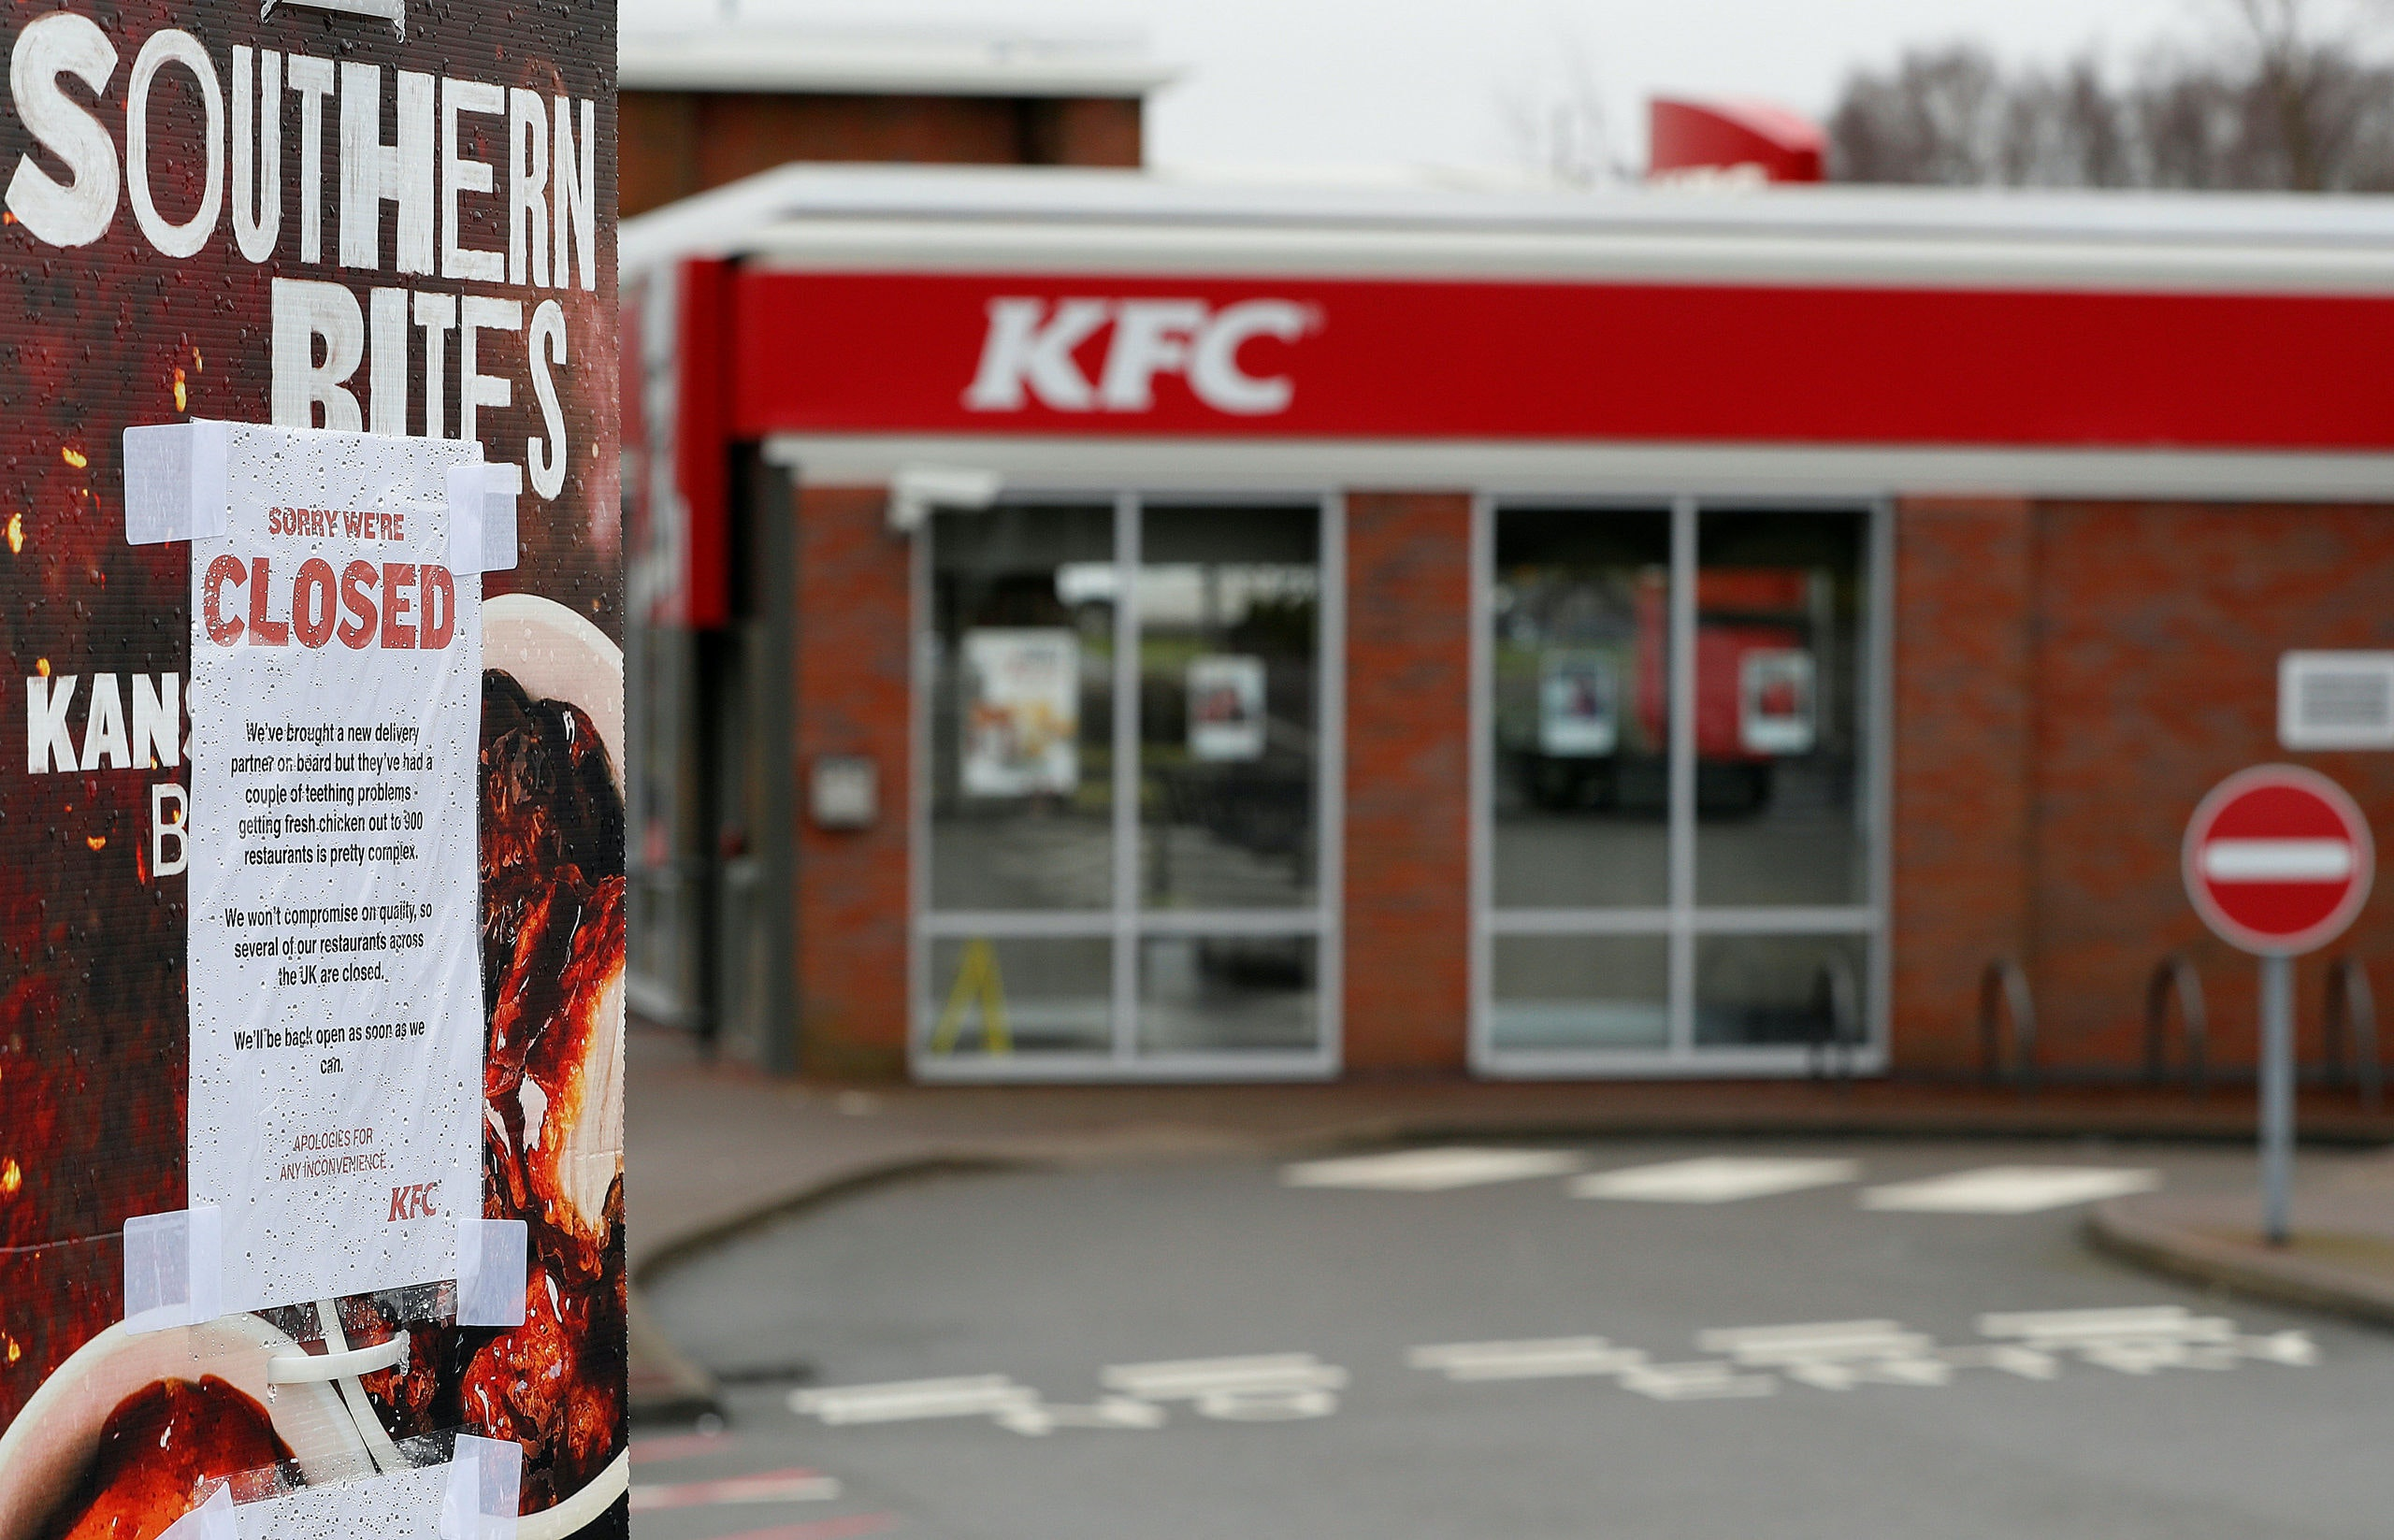 A closed sign hangs on the drive through of a KFC restaurant after problems with a new distribution system in Coalville, Britain, February 19, 2018.  REUTERS/Darren Staples